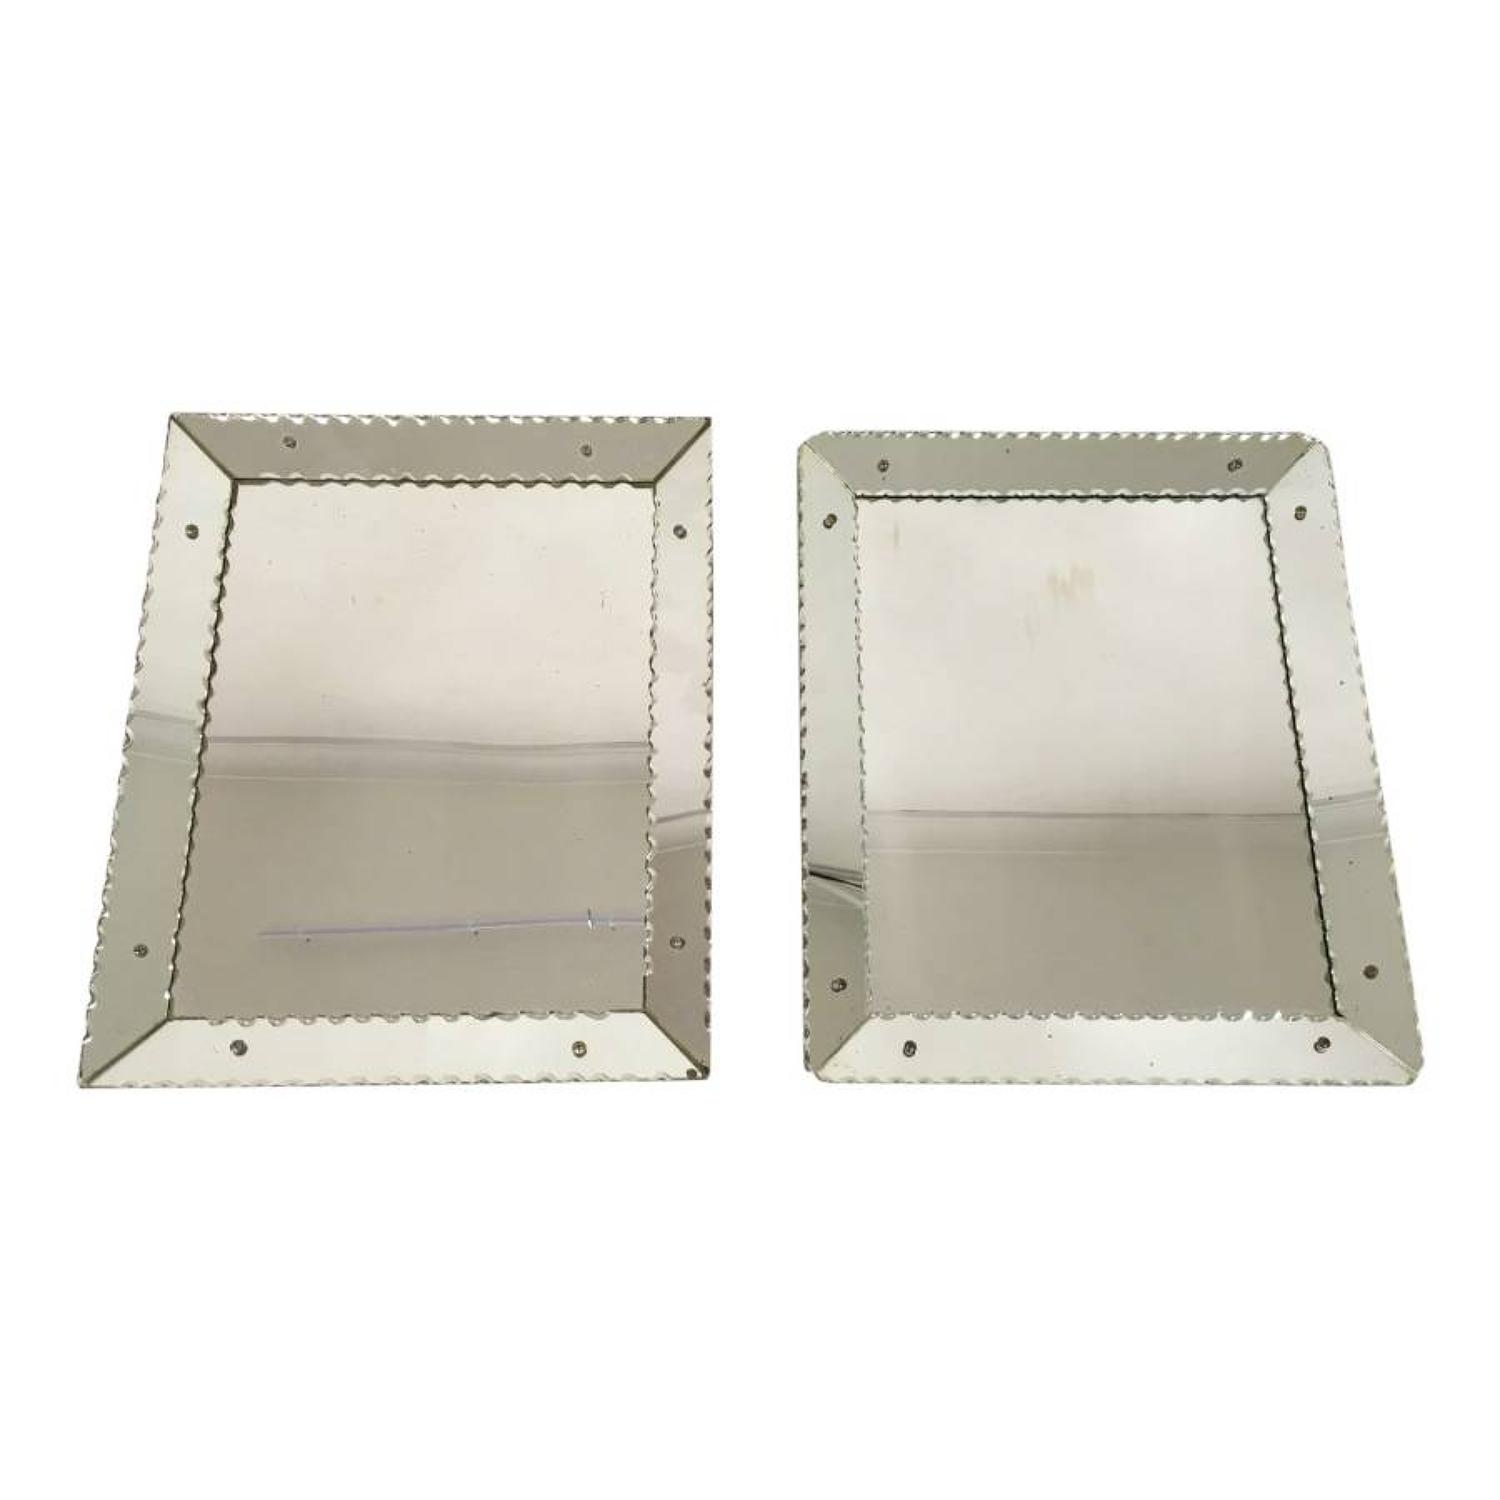 A matched pair of cushion scalloped edge mirrors